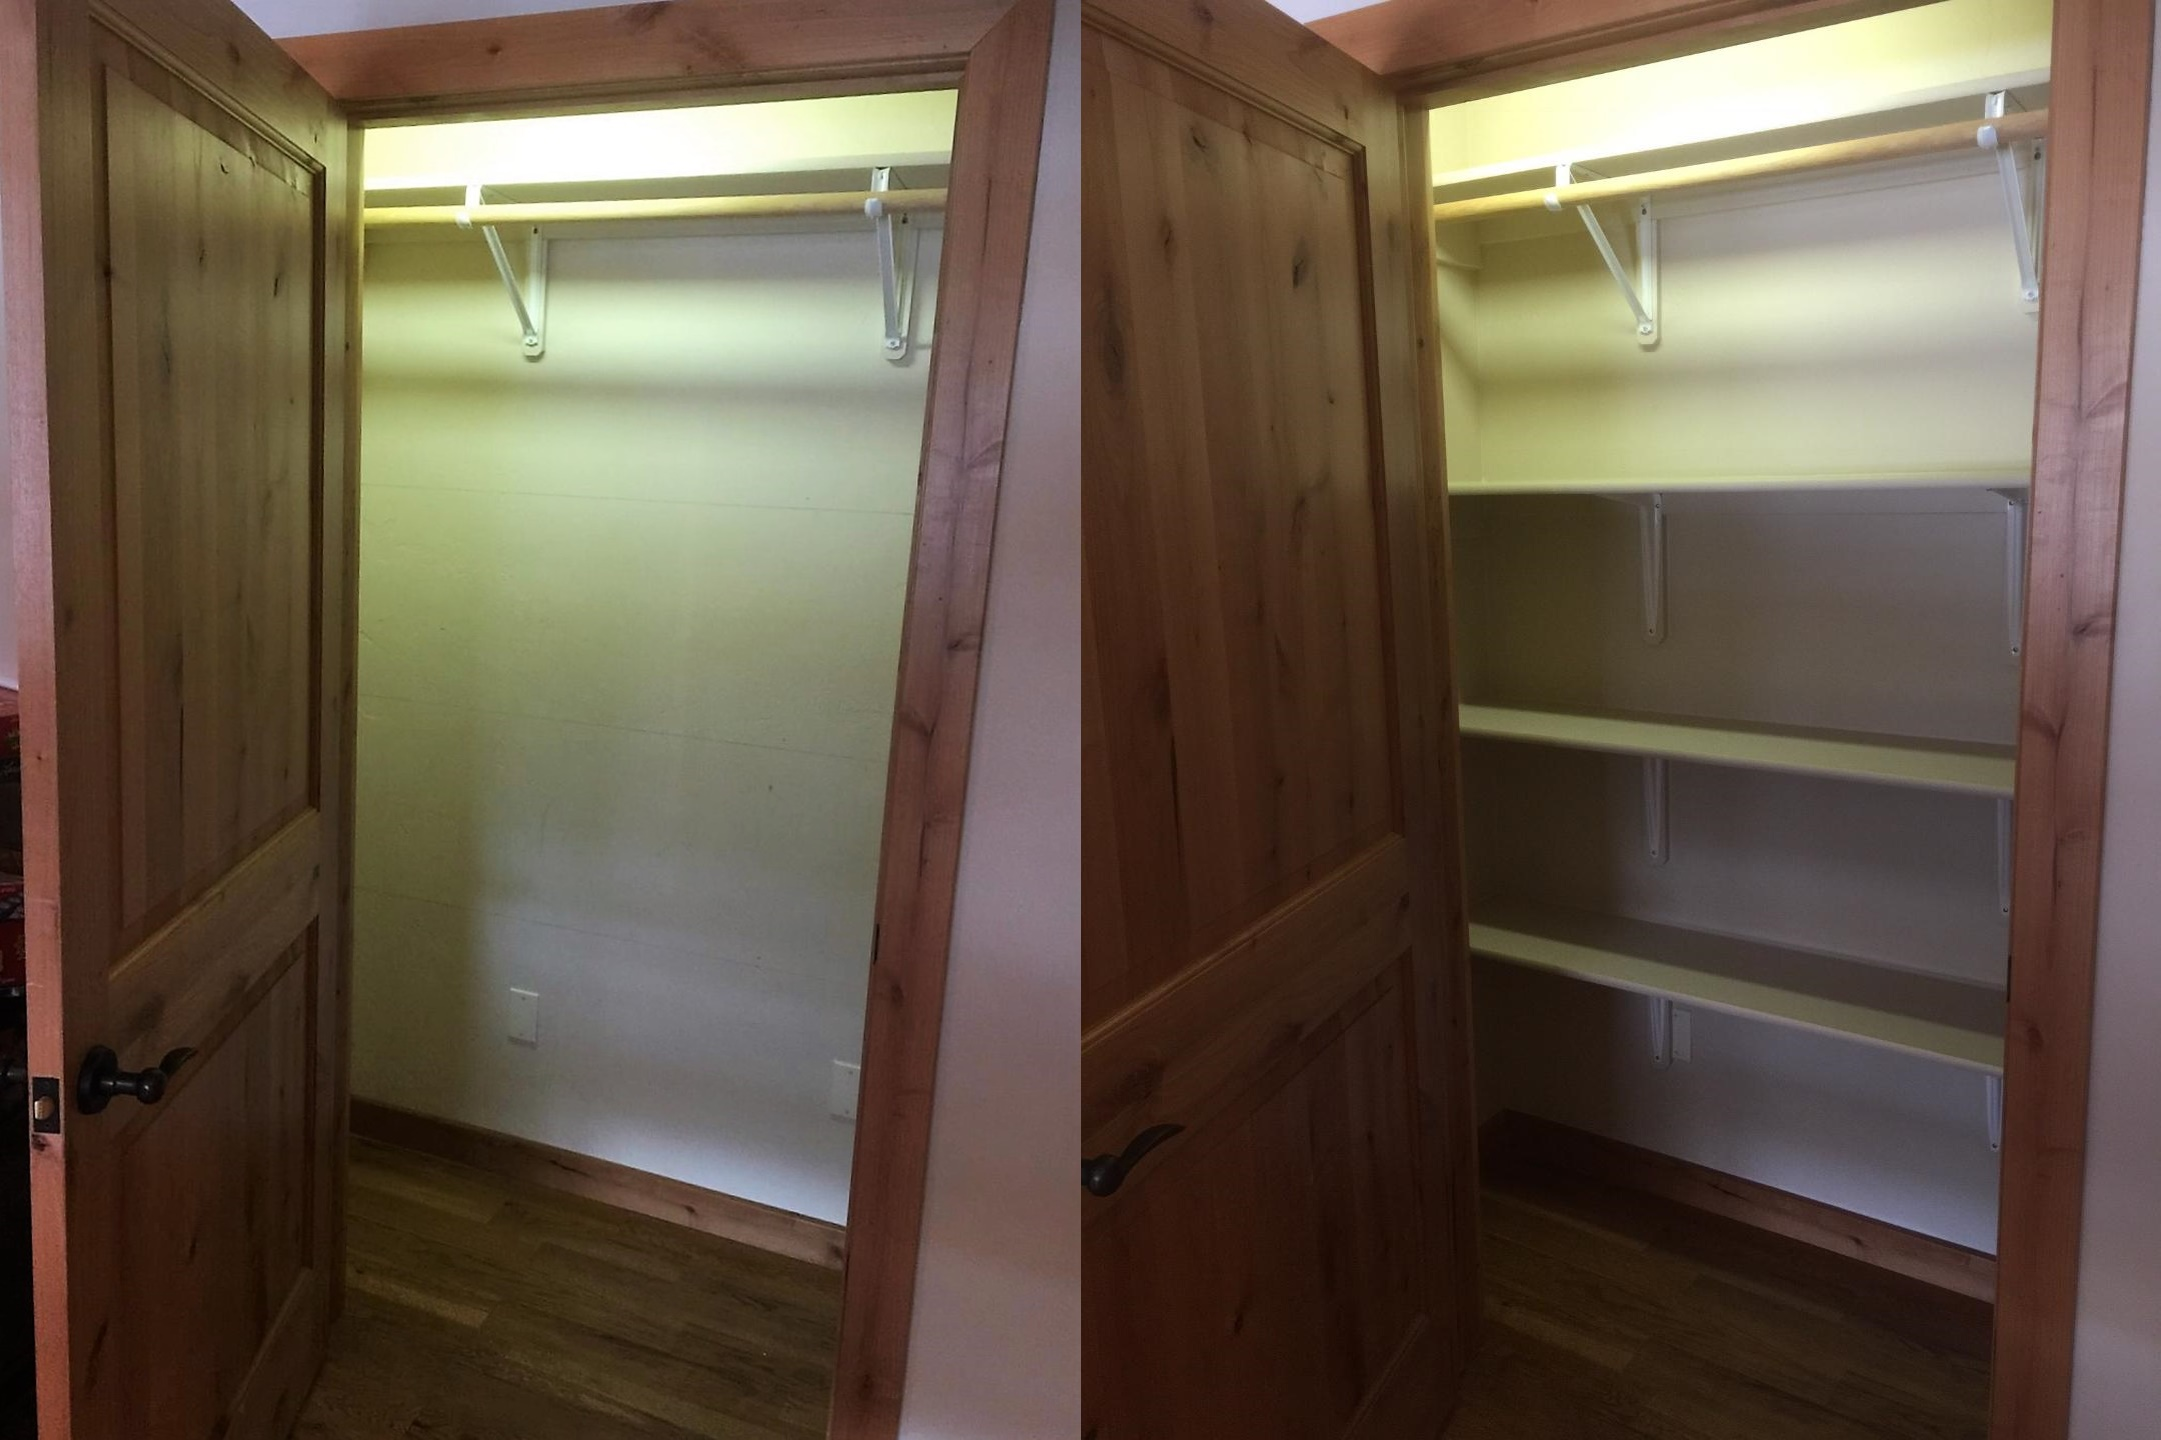 Before and after closet shelves